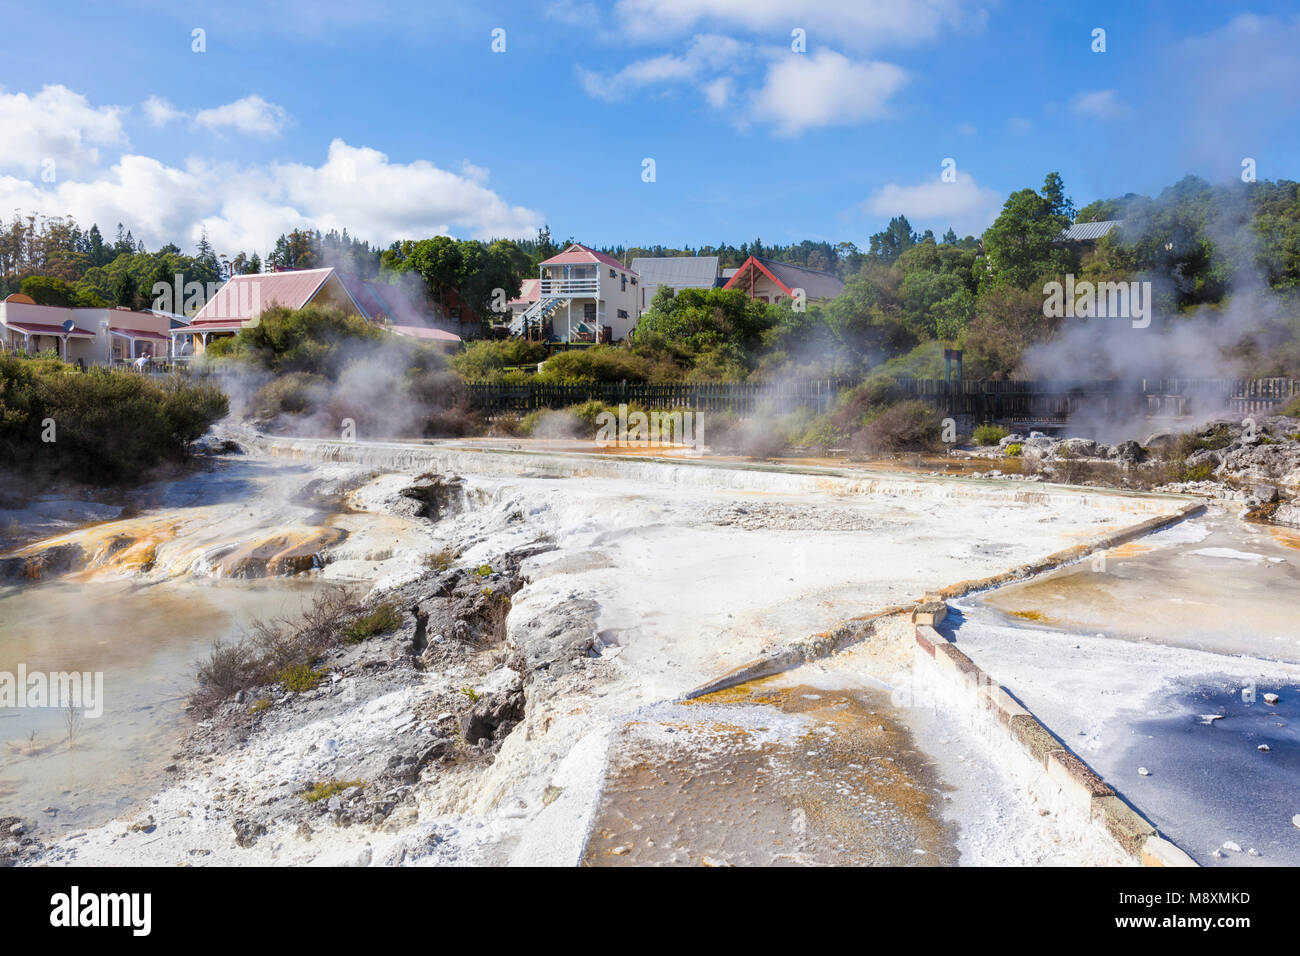 new zealand rotorua new zealand whakarewarewa rotorua terraces with mineral deposit run off from the parekohuru Stock Photo